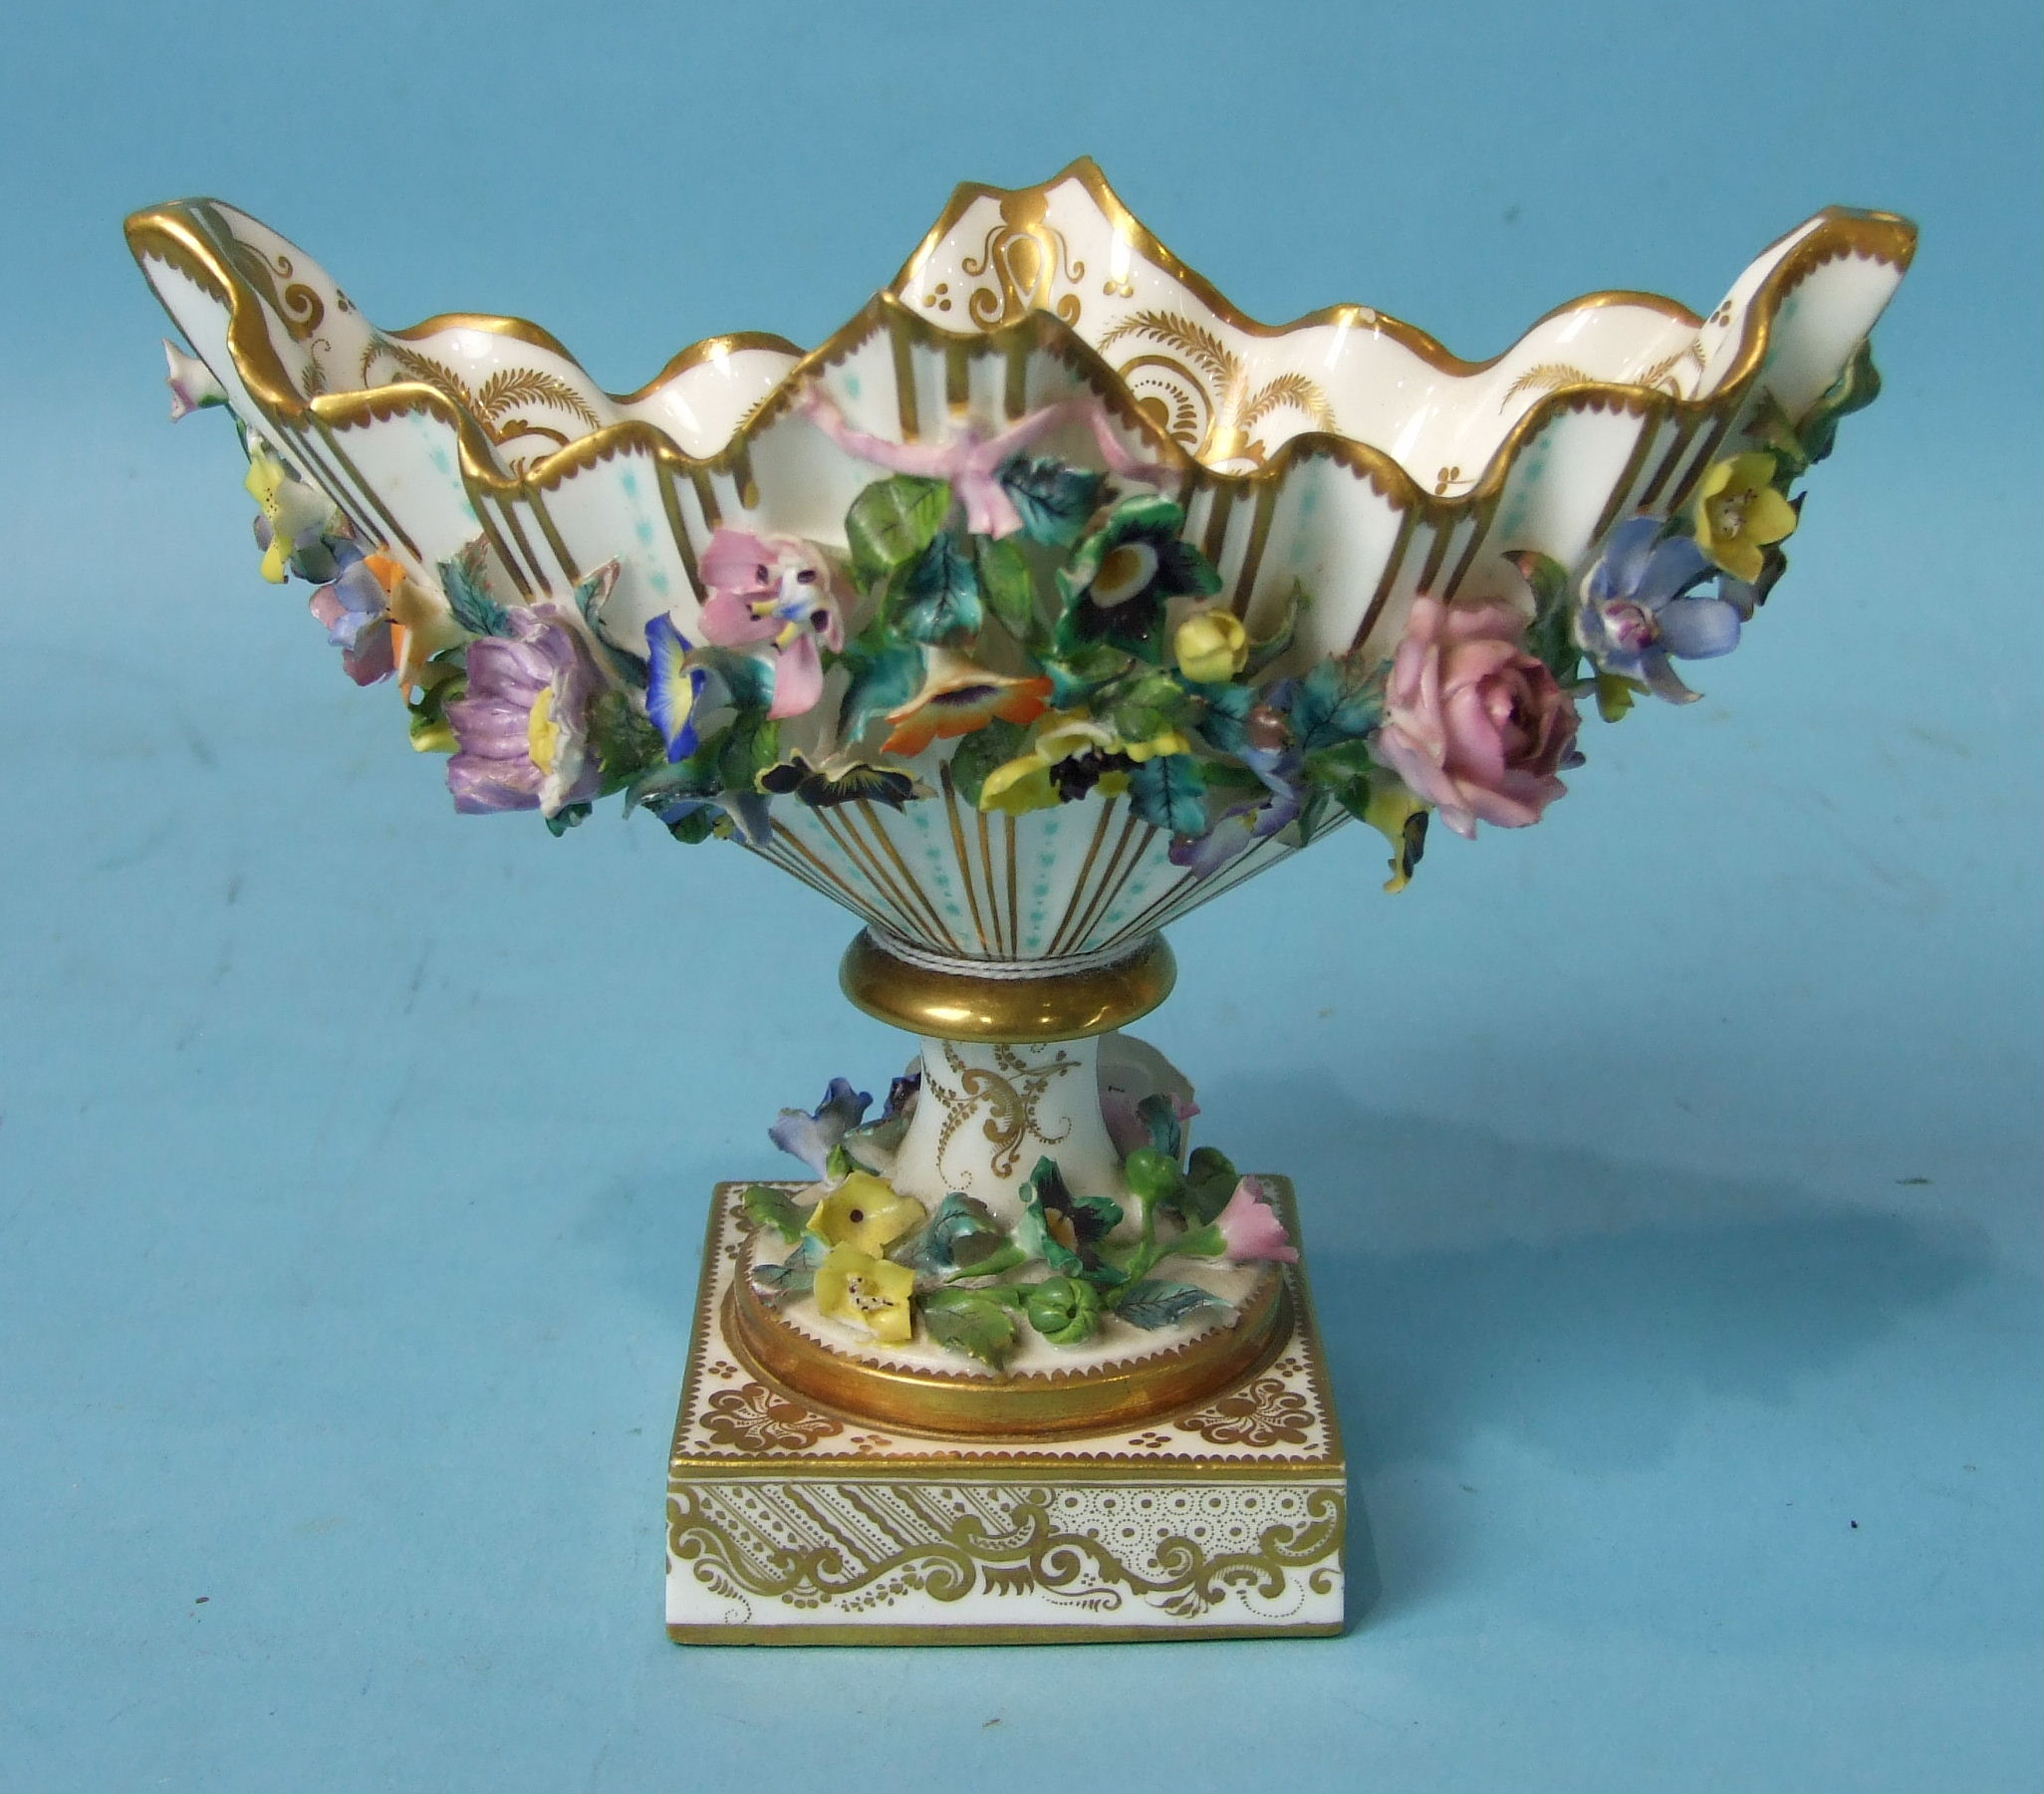 Lot 393 - A mid-19th century Minton porcelain boat-shaped vase on square base encrusted with flowers, fine